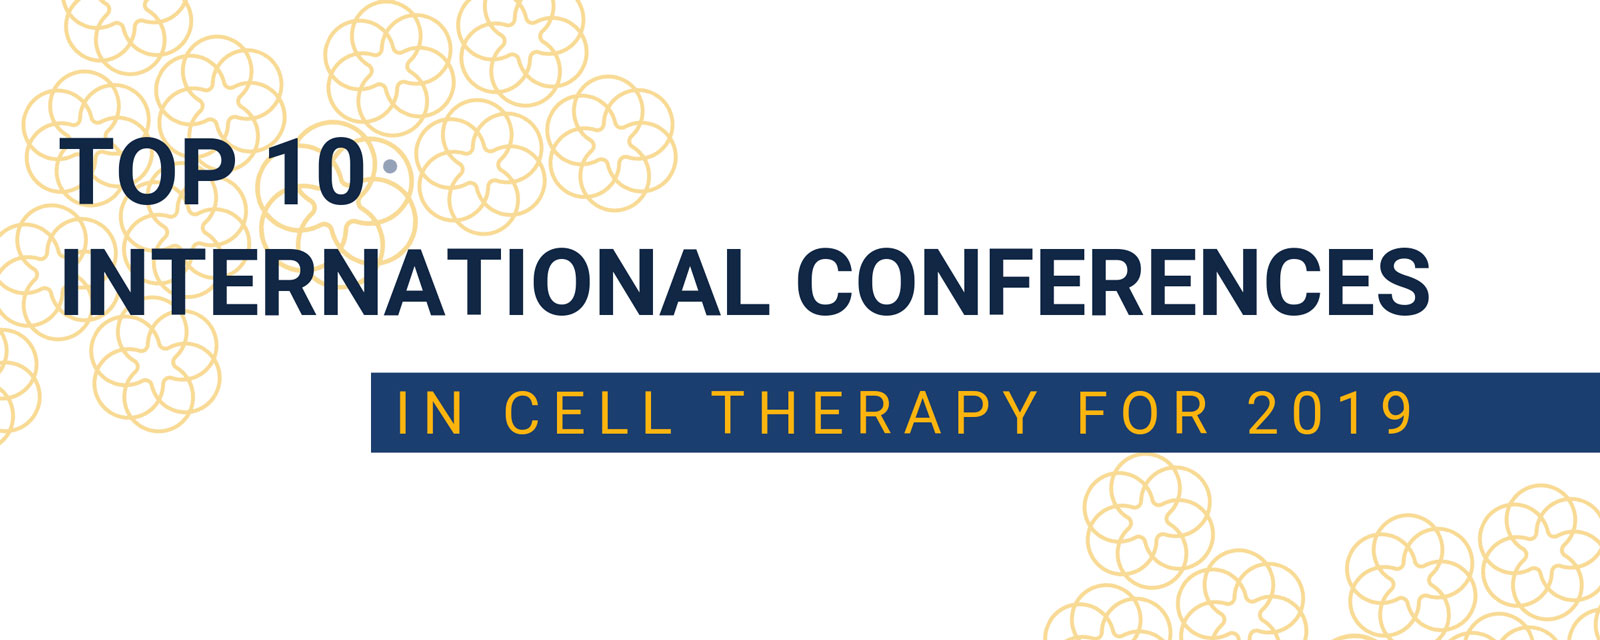 Top 10 International Cell Therapy Conferences